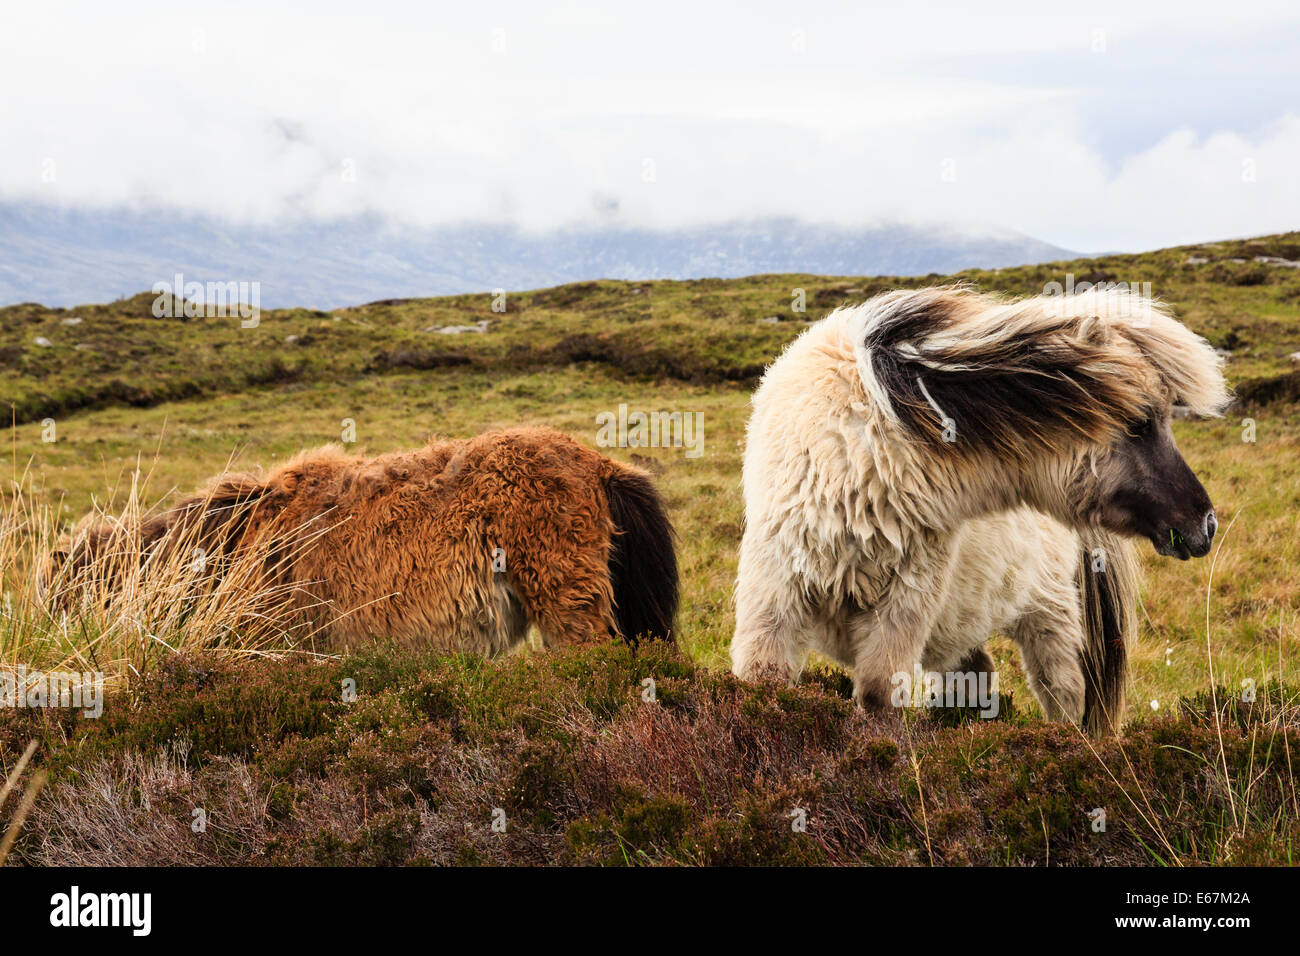 Wild ponies on boggy moorland. Loch Druidibeg National Nature Reserve, South Uist, Outer Hebrides, Western Isles, - Stock Image